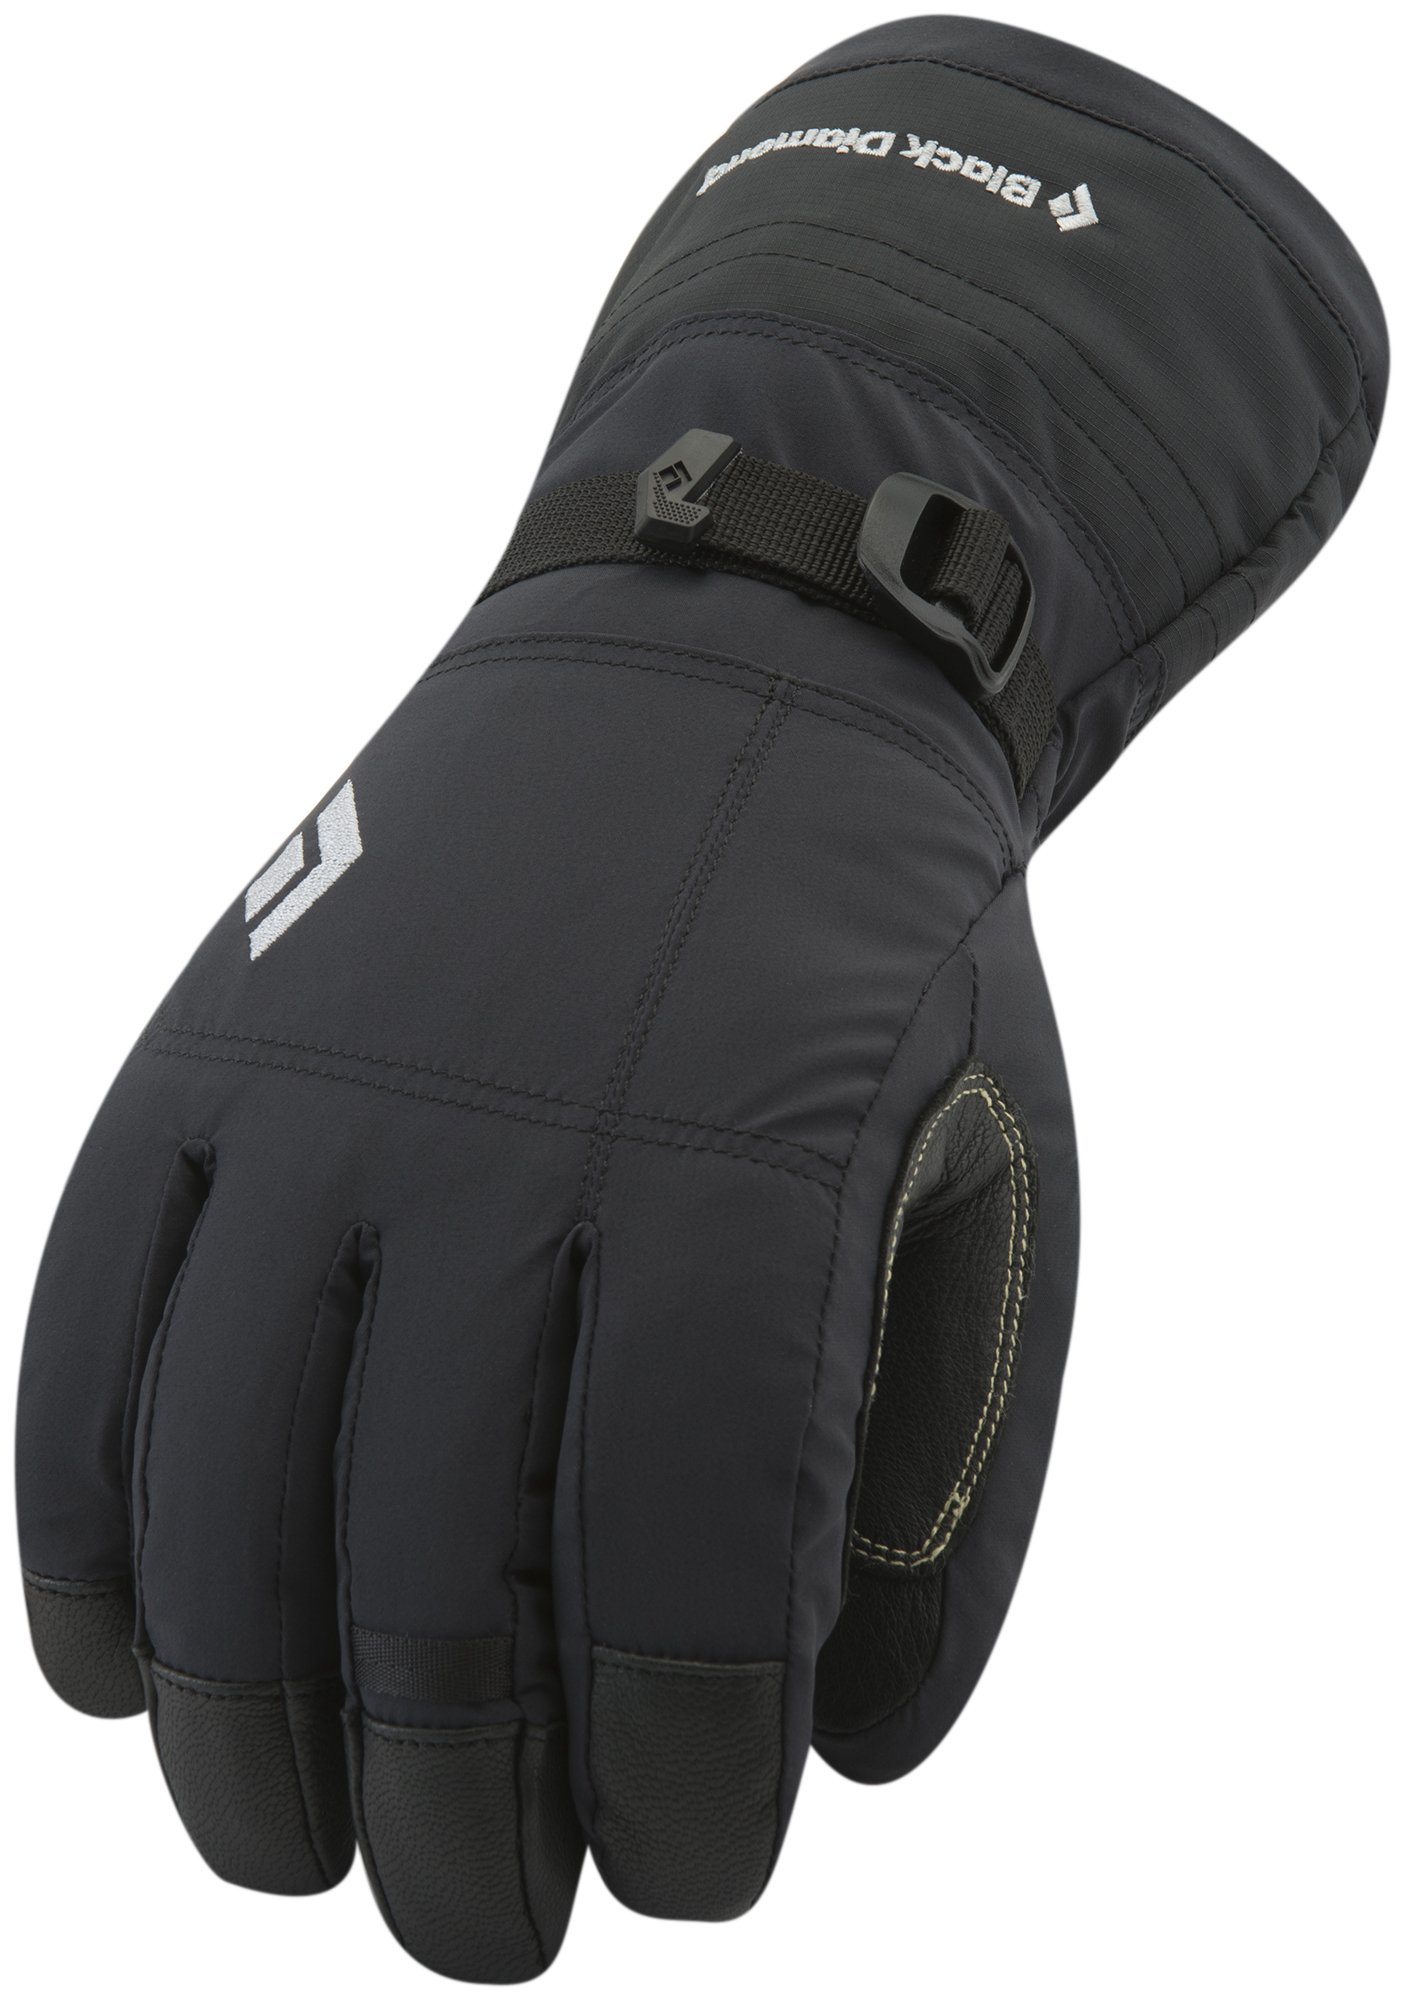 Black Diamond Soloist Cold Weather Gloves, Black, X-Large